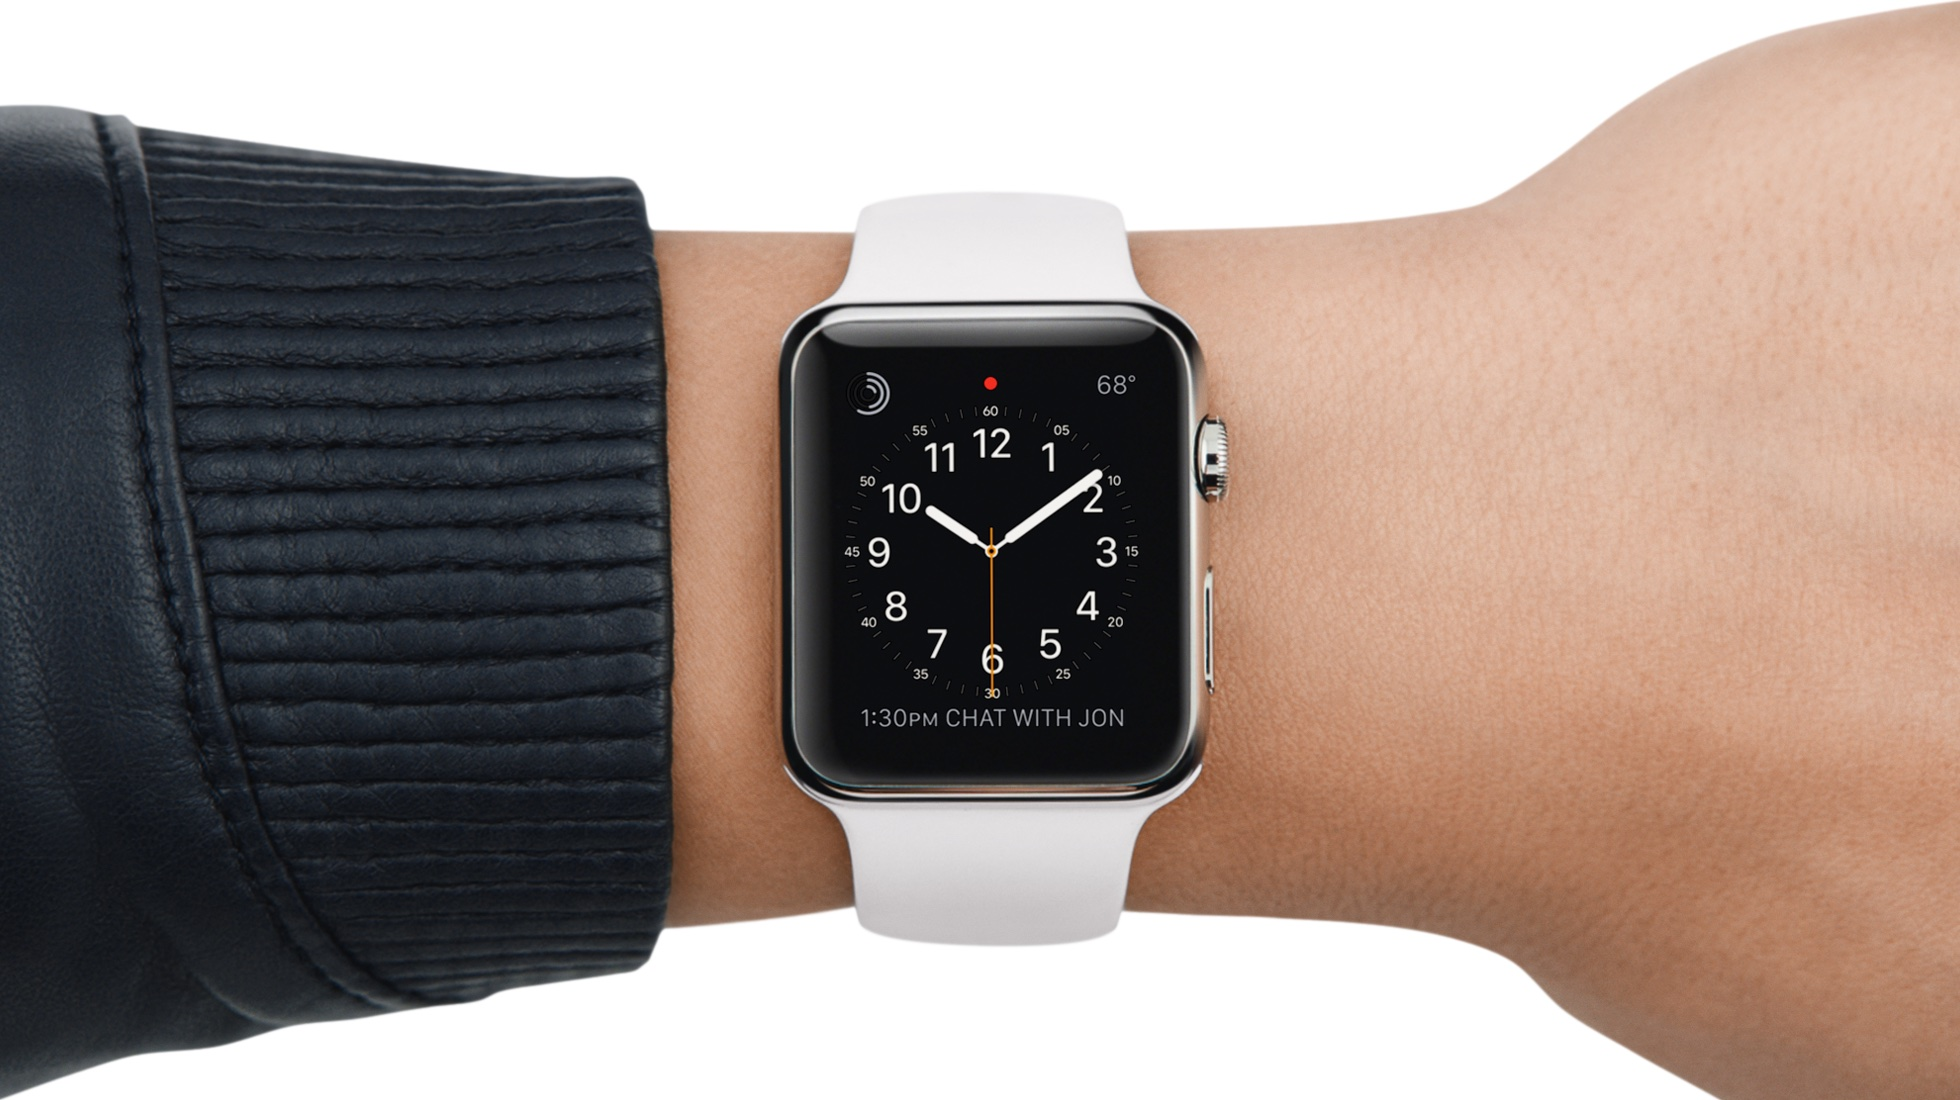 Apple Watch tells the time in 4 times more accurate than the iPhone